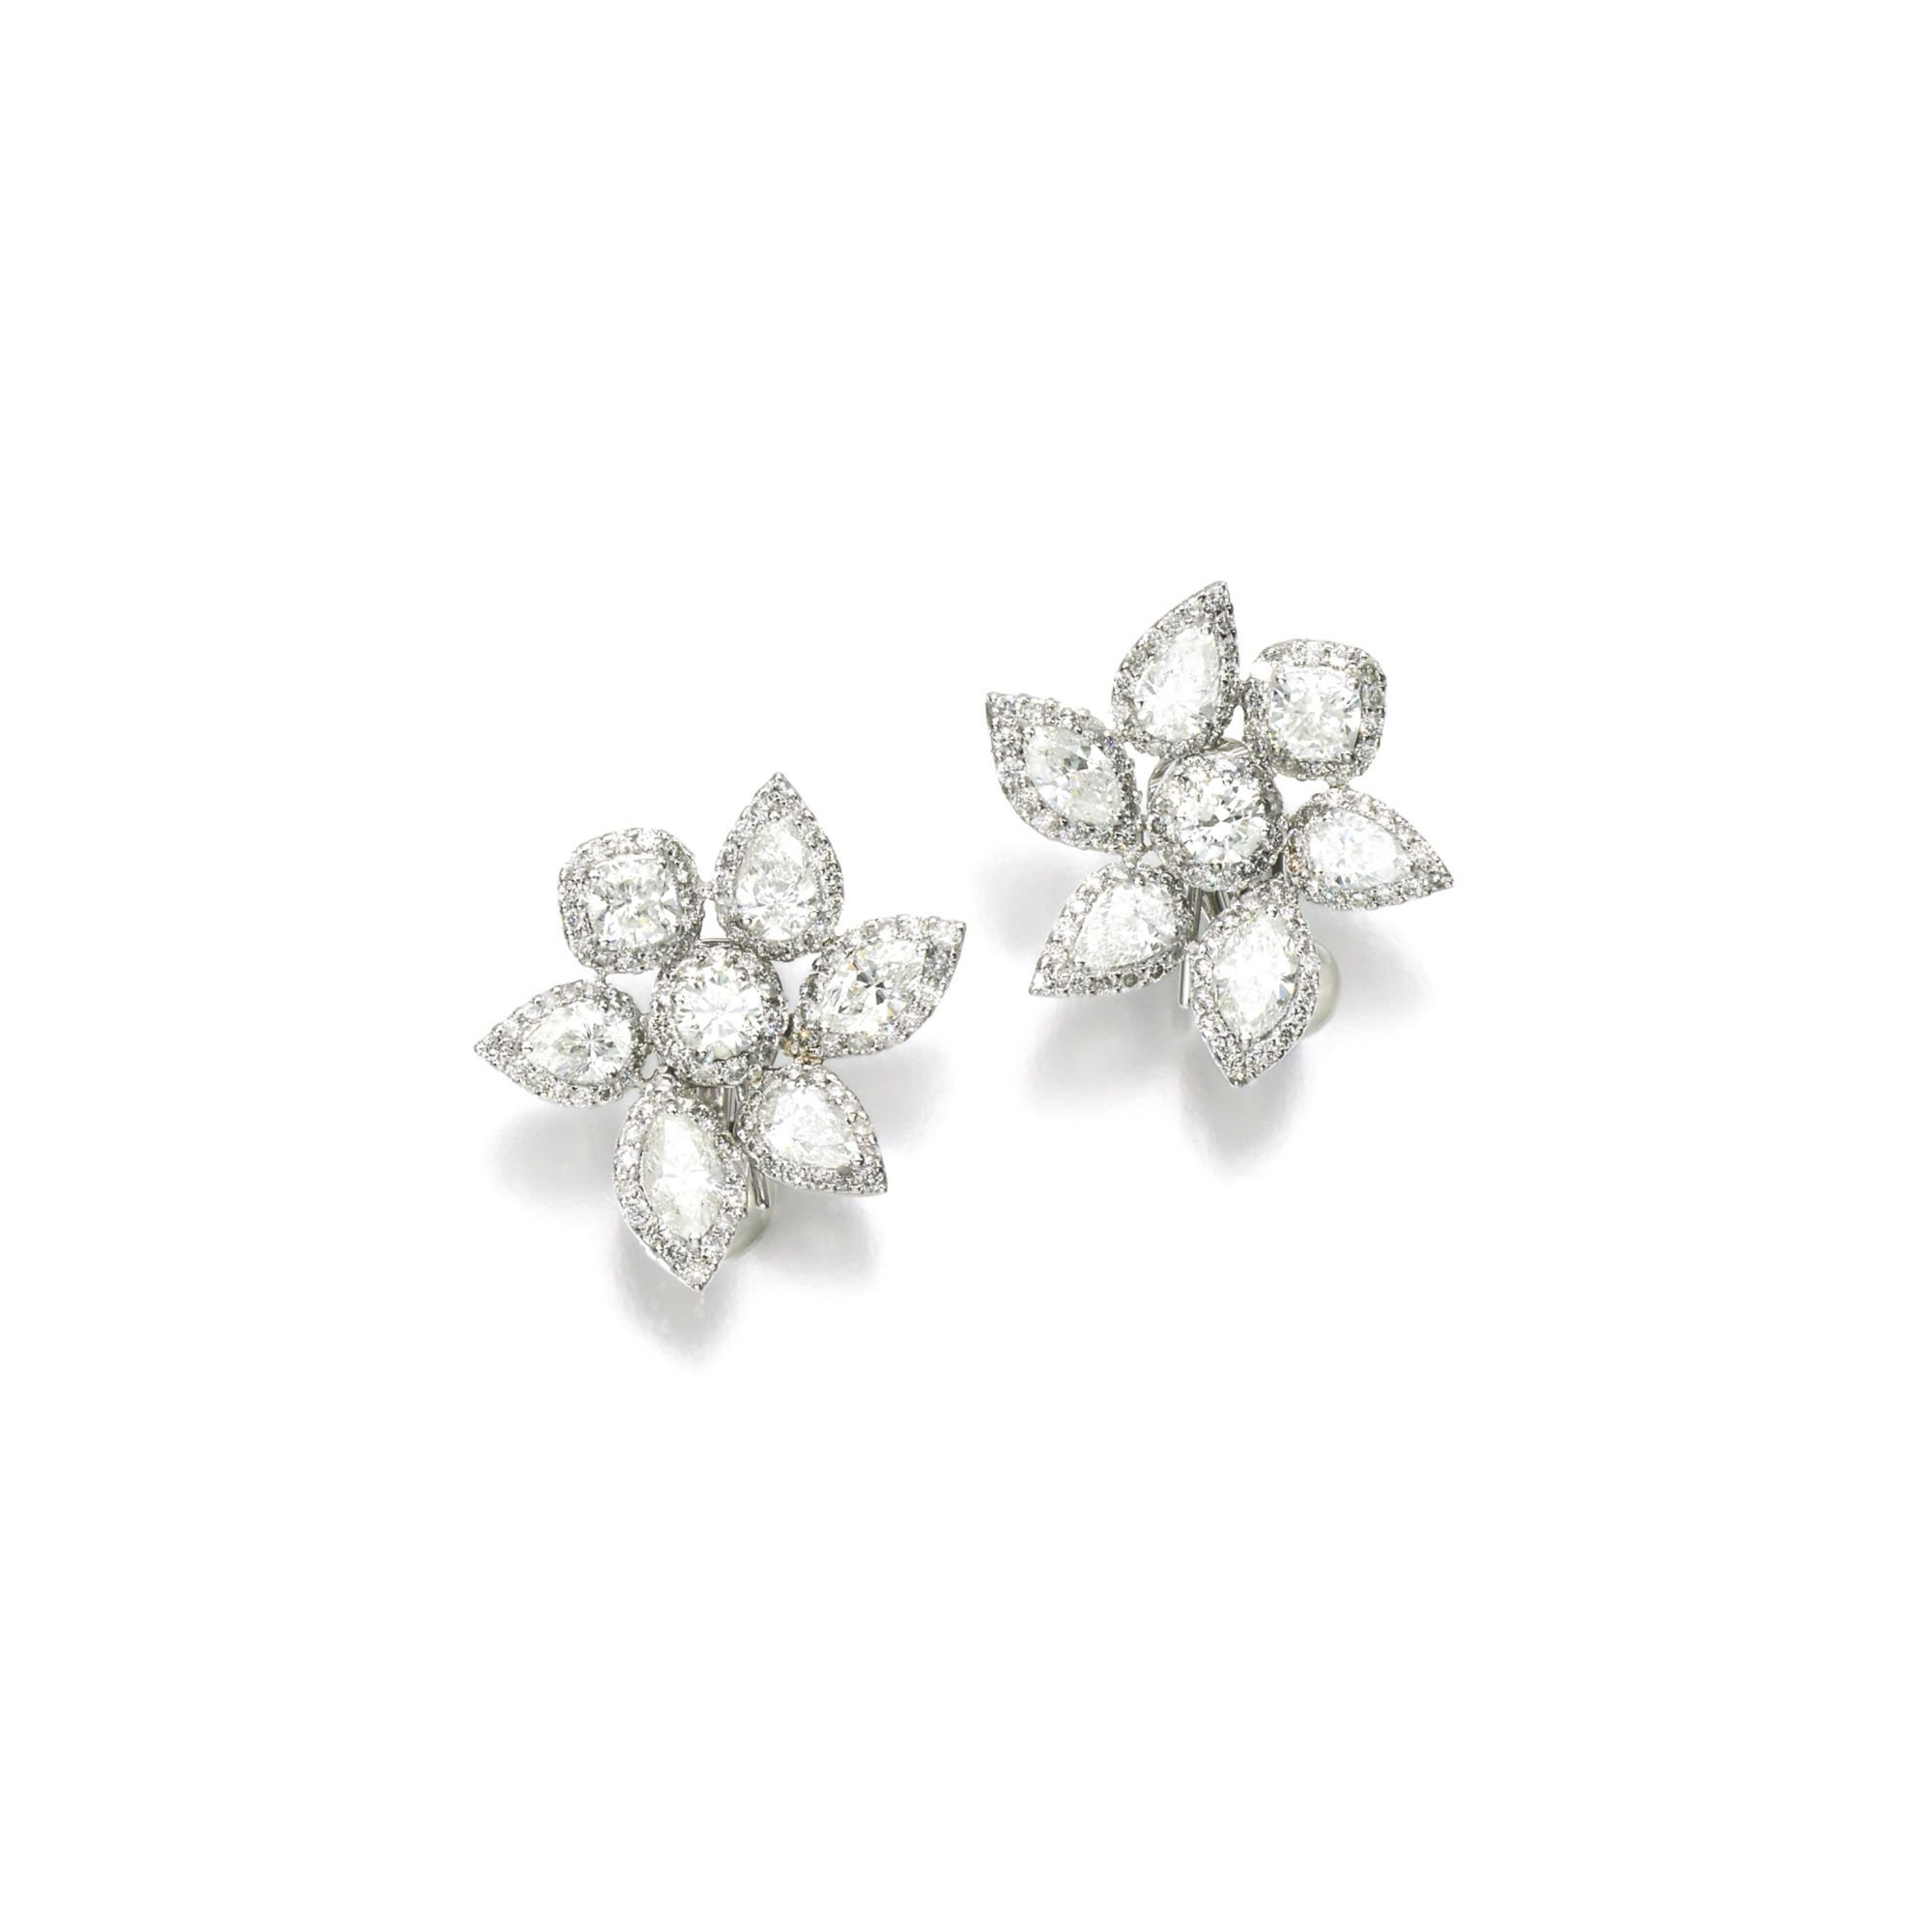 Pair Of Diamond Earrings Each Designed As A Flower Set With Cushion Marquise Pear Shaped And Brilliant Cut Diamonds Collapsible Post Hinged Back